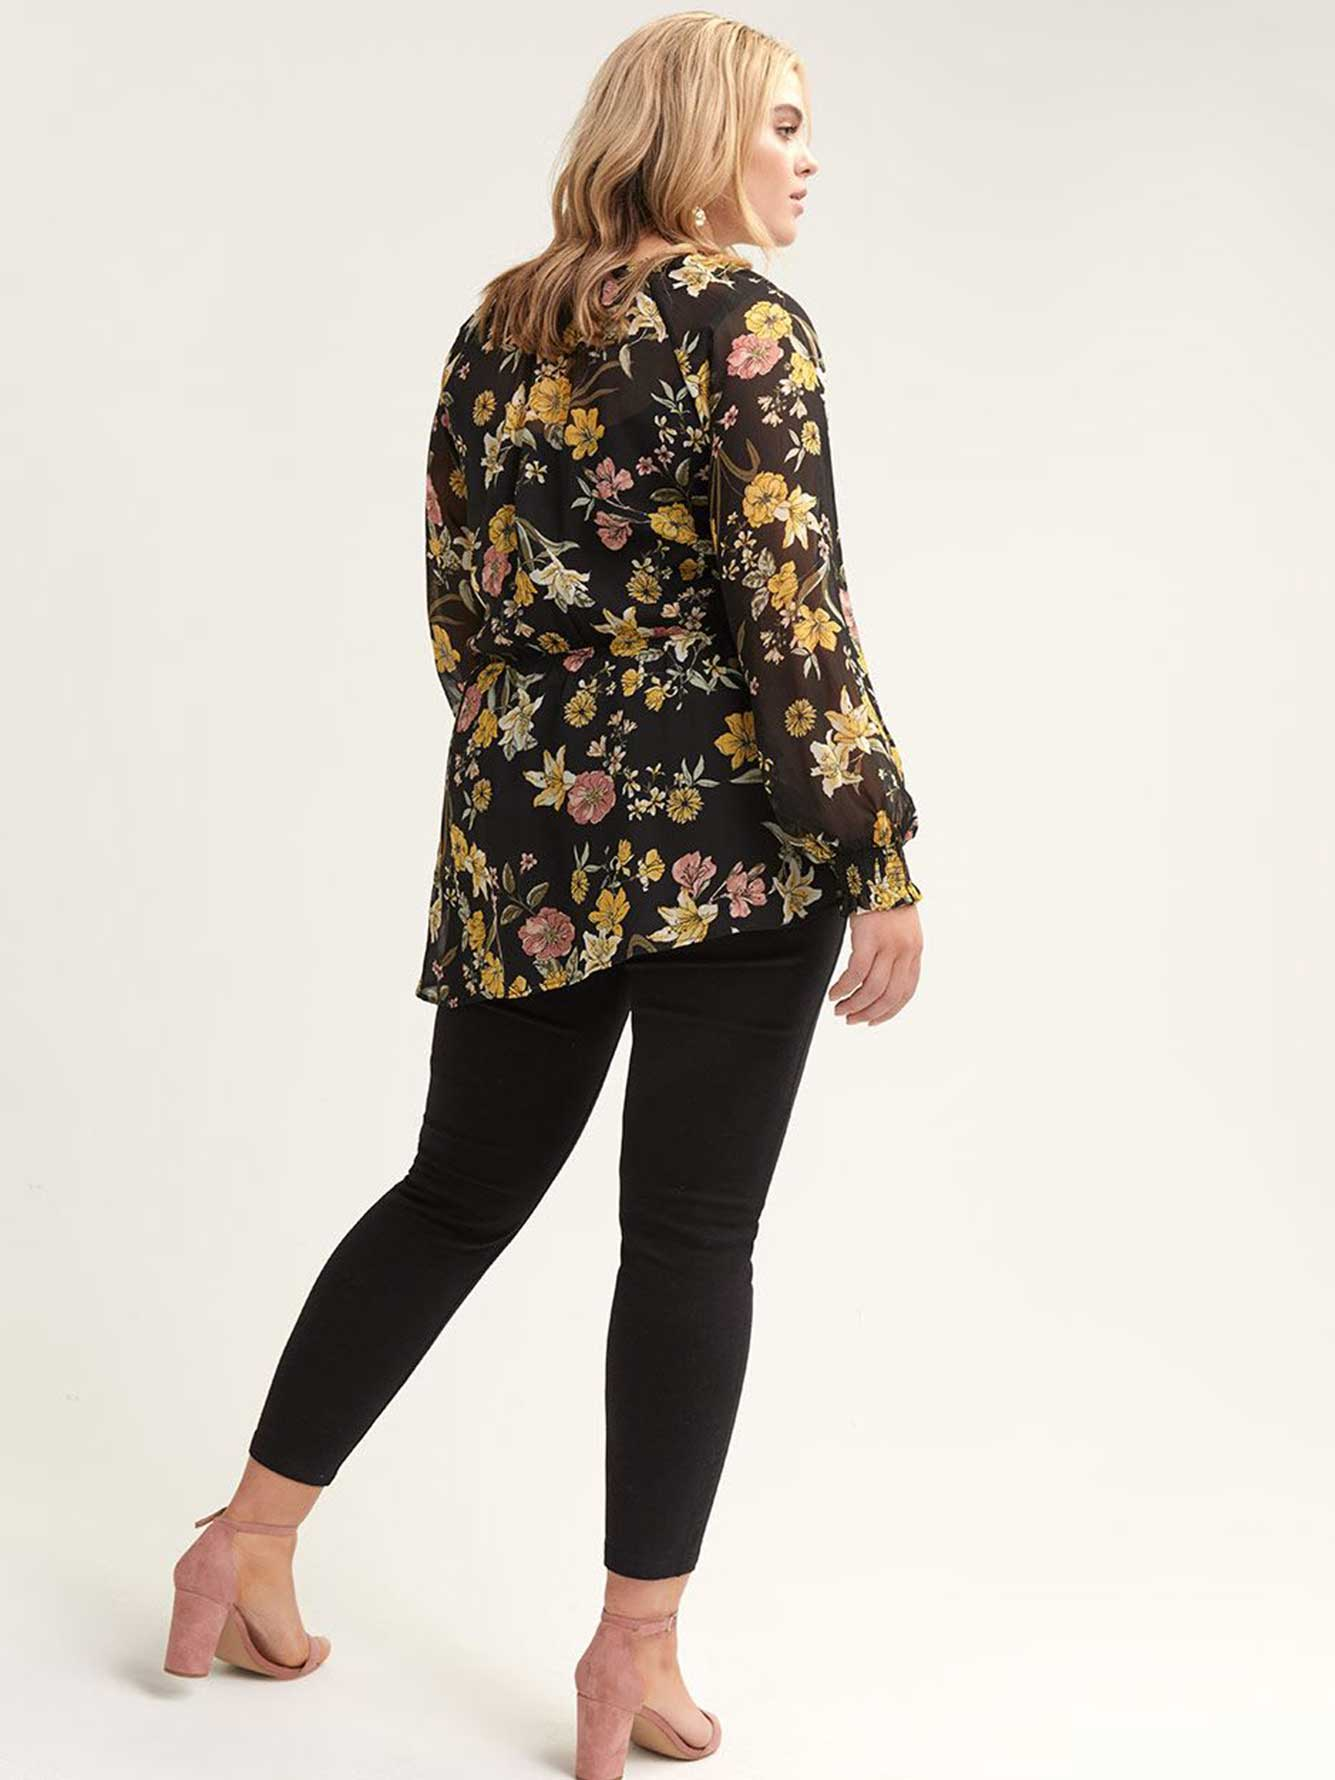 Floral Peplum Blouse with Balloon Sleeves - L&L